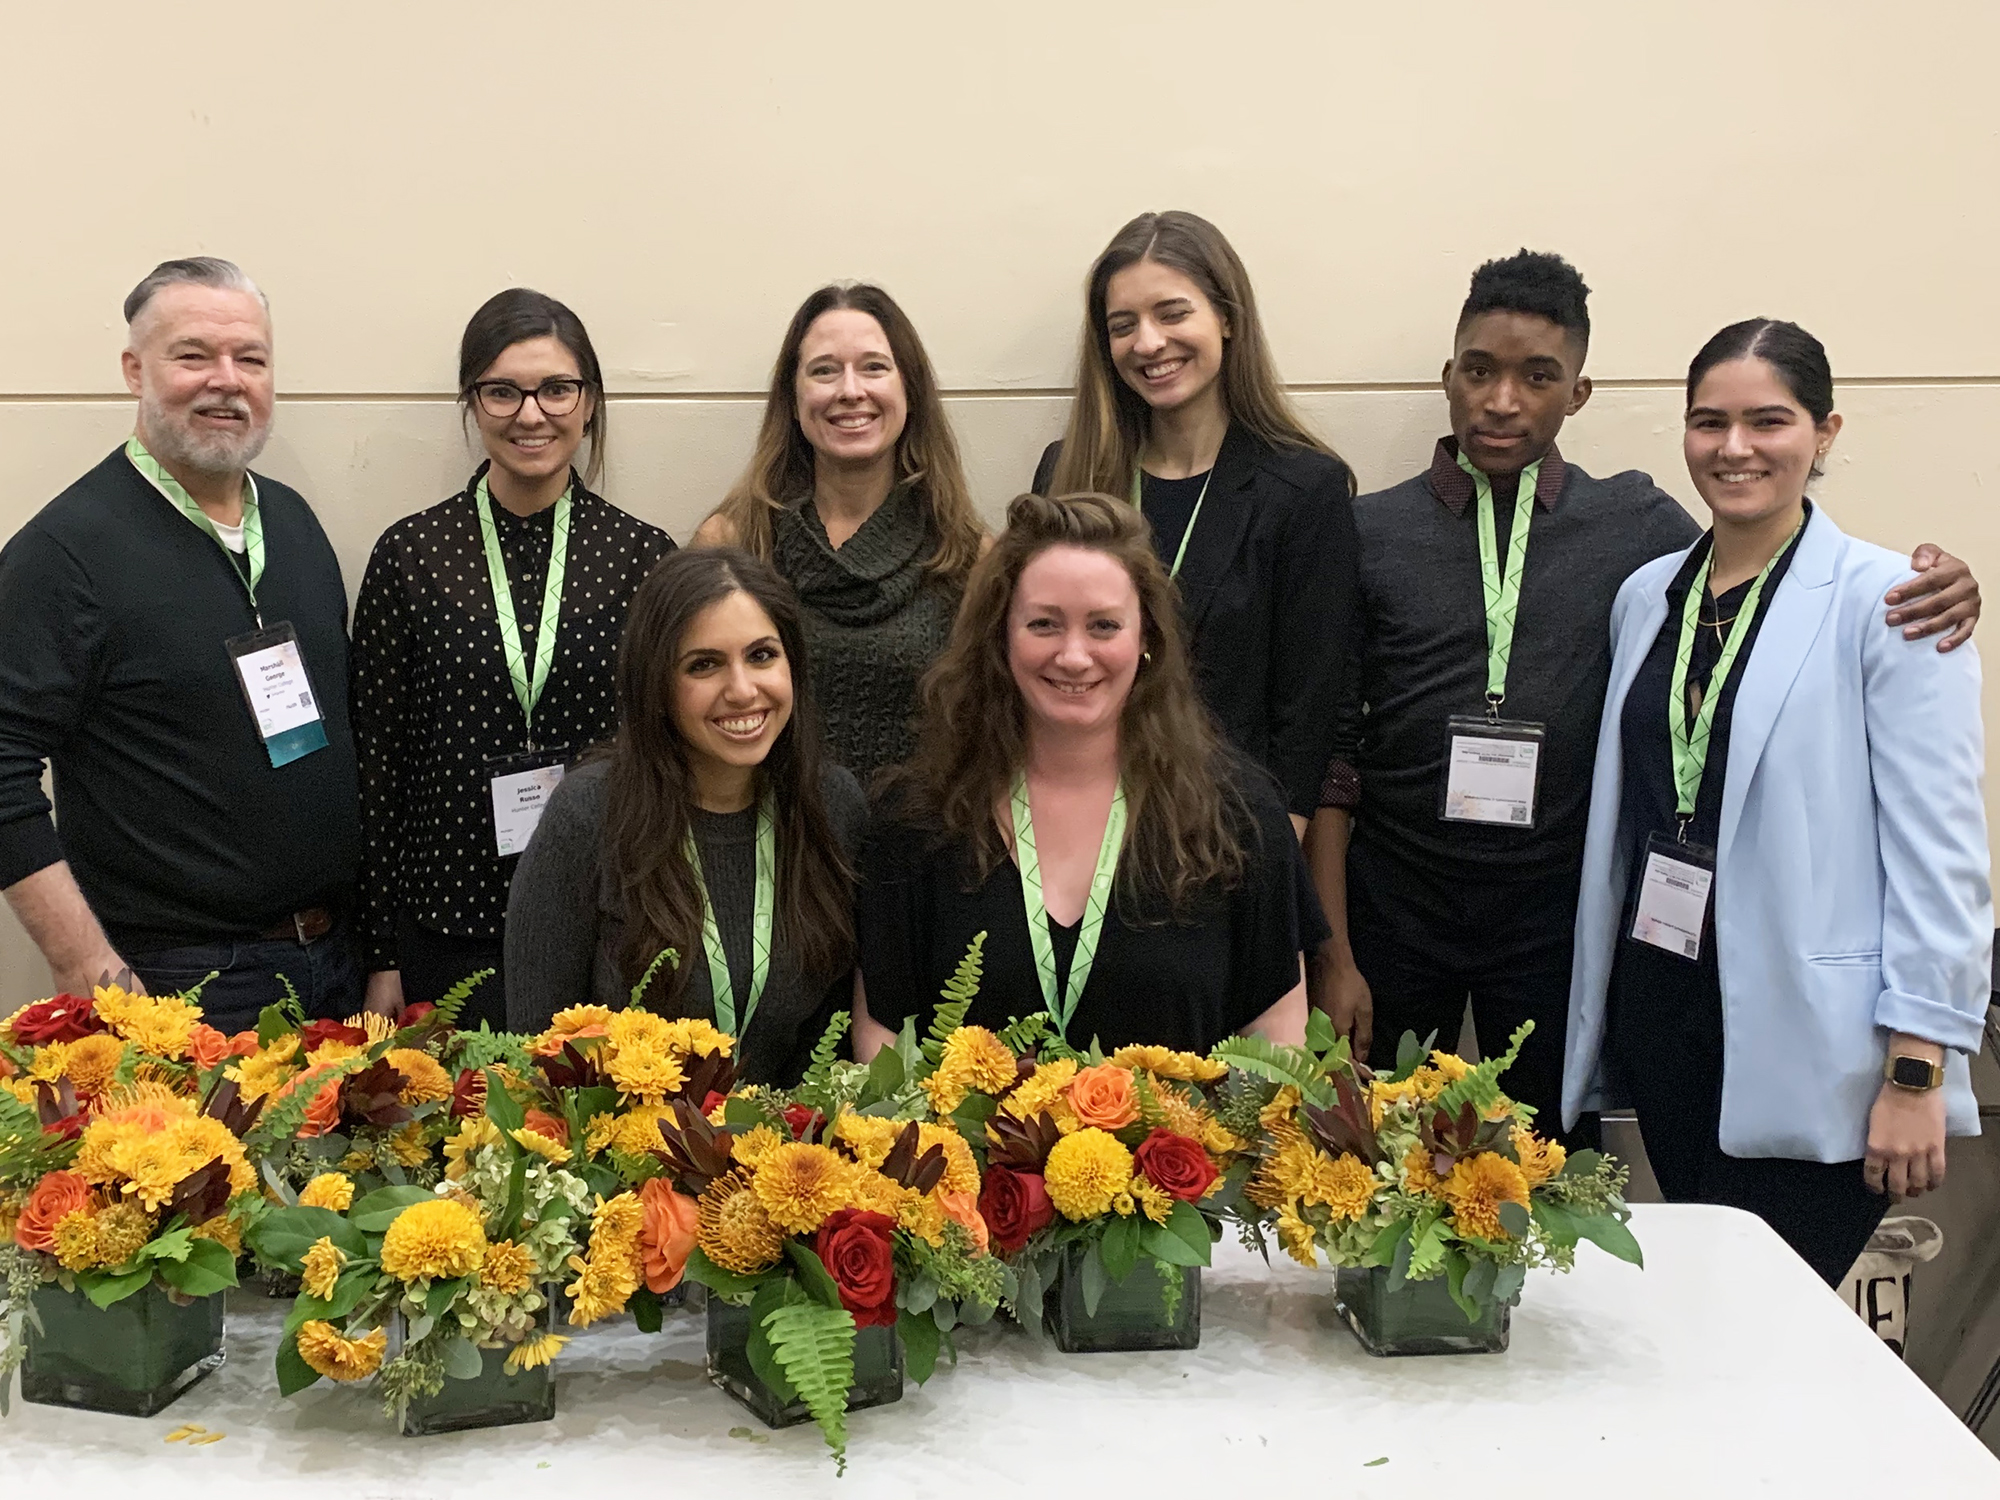 Students and Faculty at the Annual Convention of the National Council of Teachers of English in Baltimore.